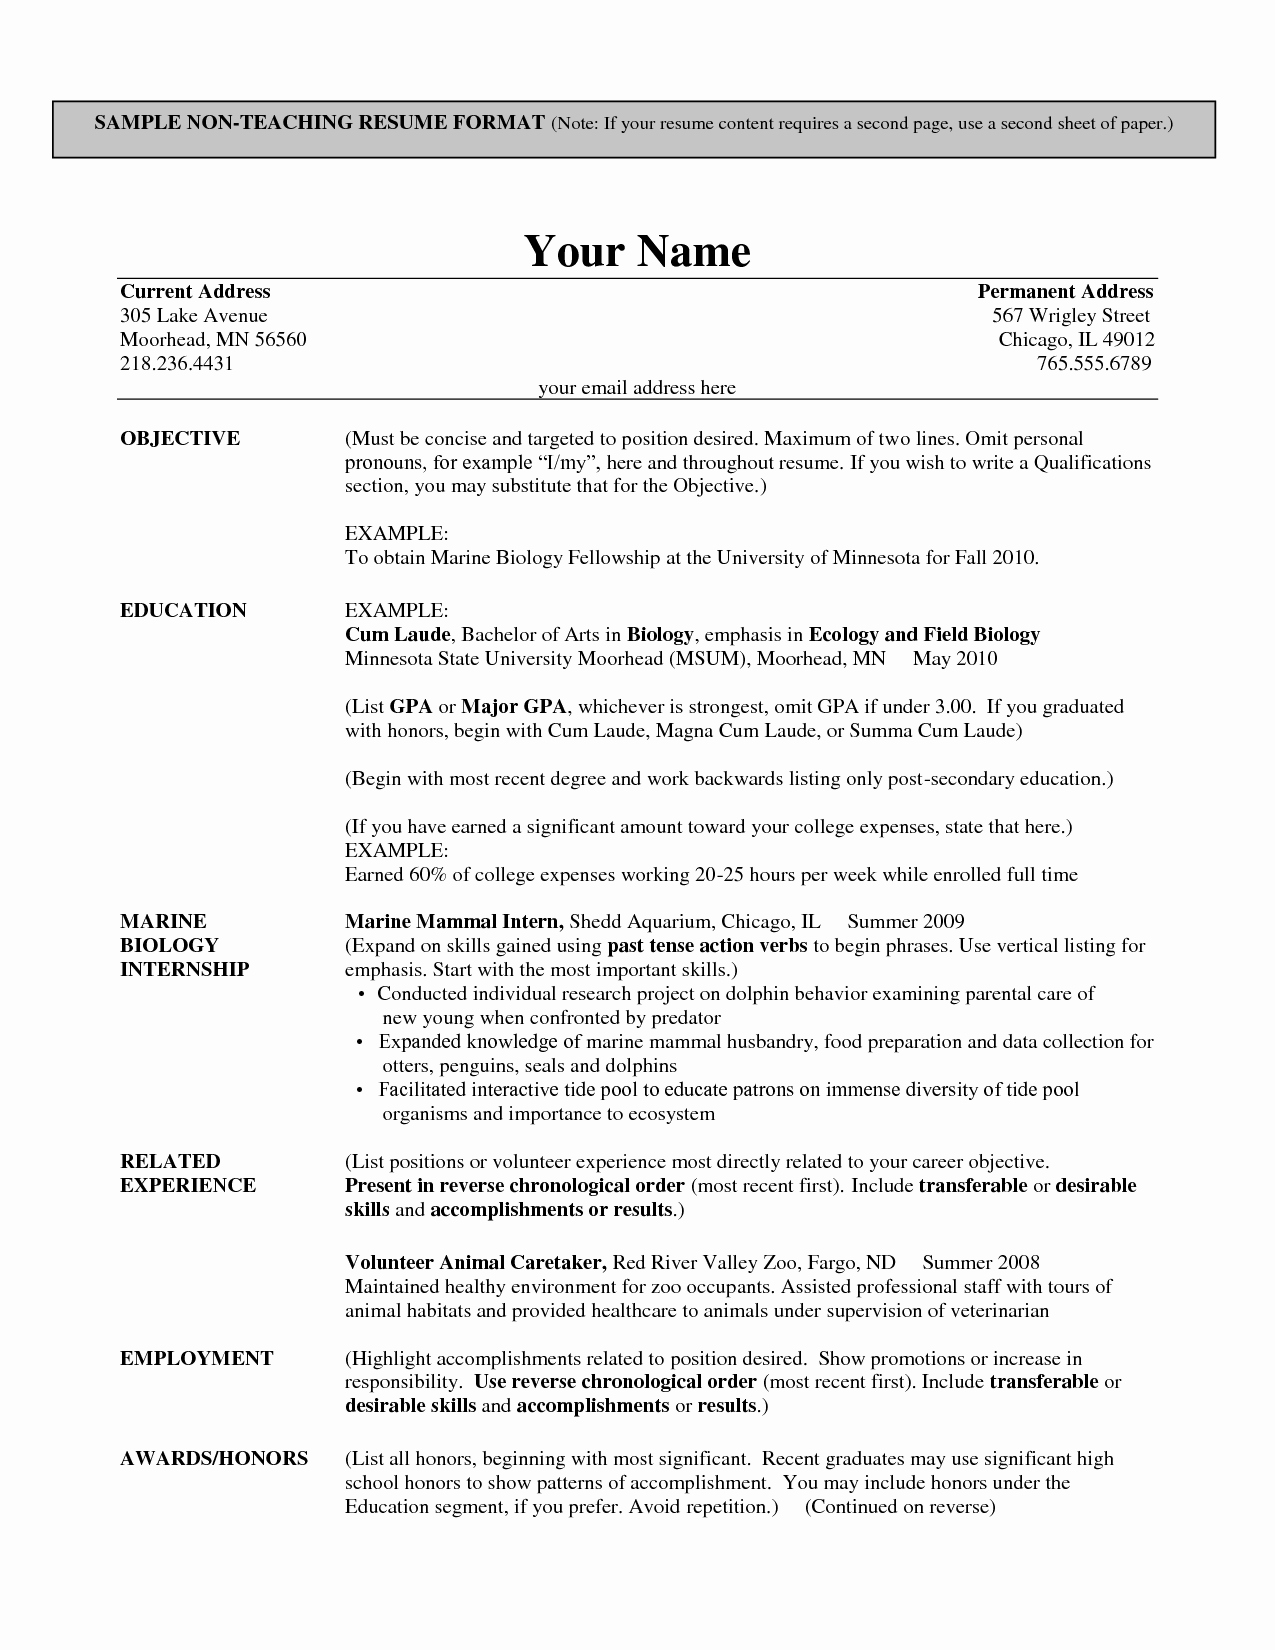 Resume format for Teacher Job In School Bongdaao